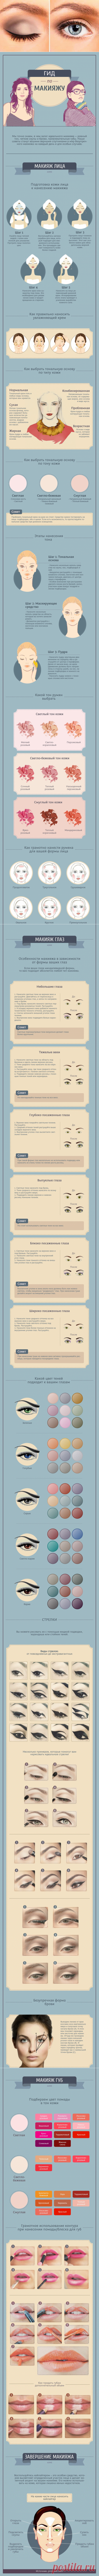 The fullest guide on a make-up without which now not to do